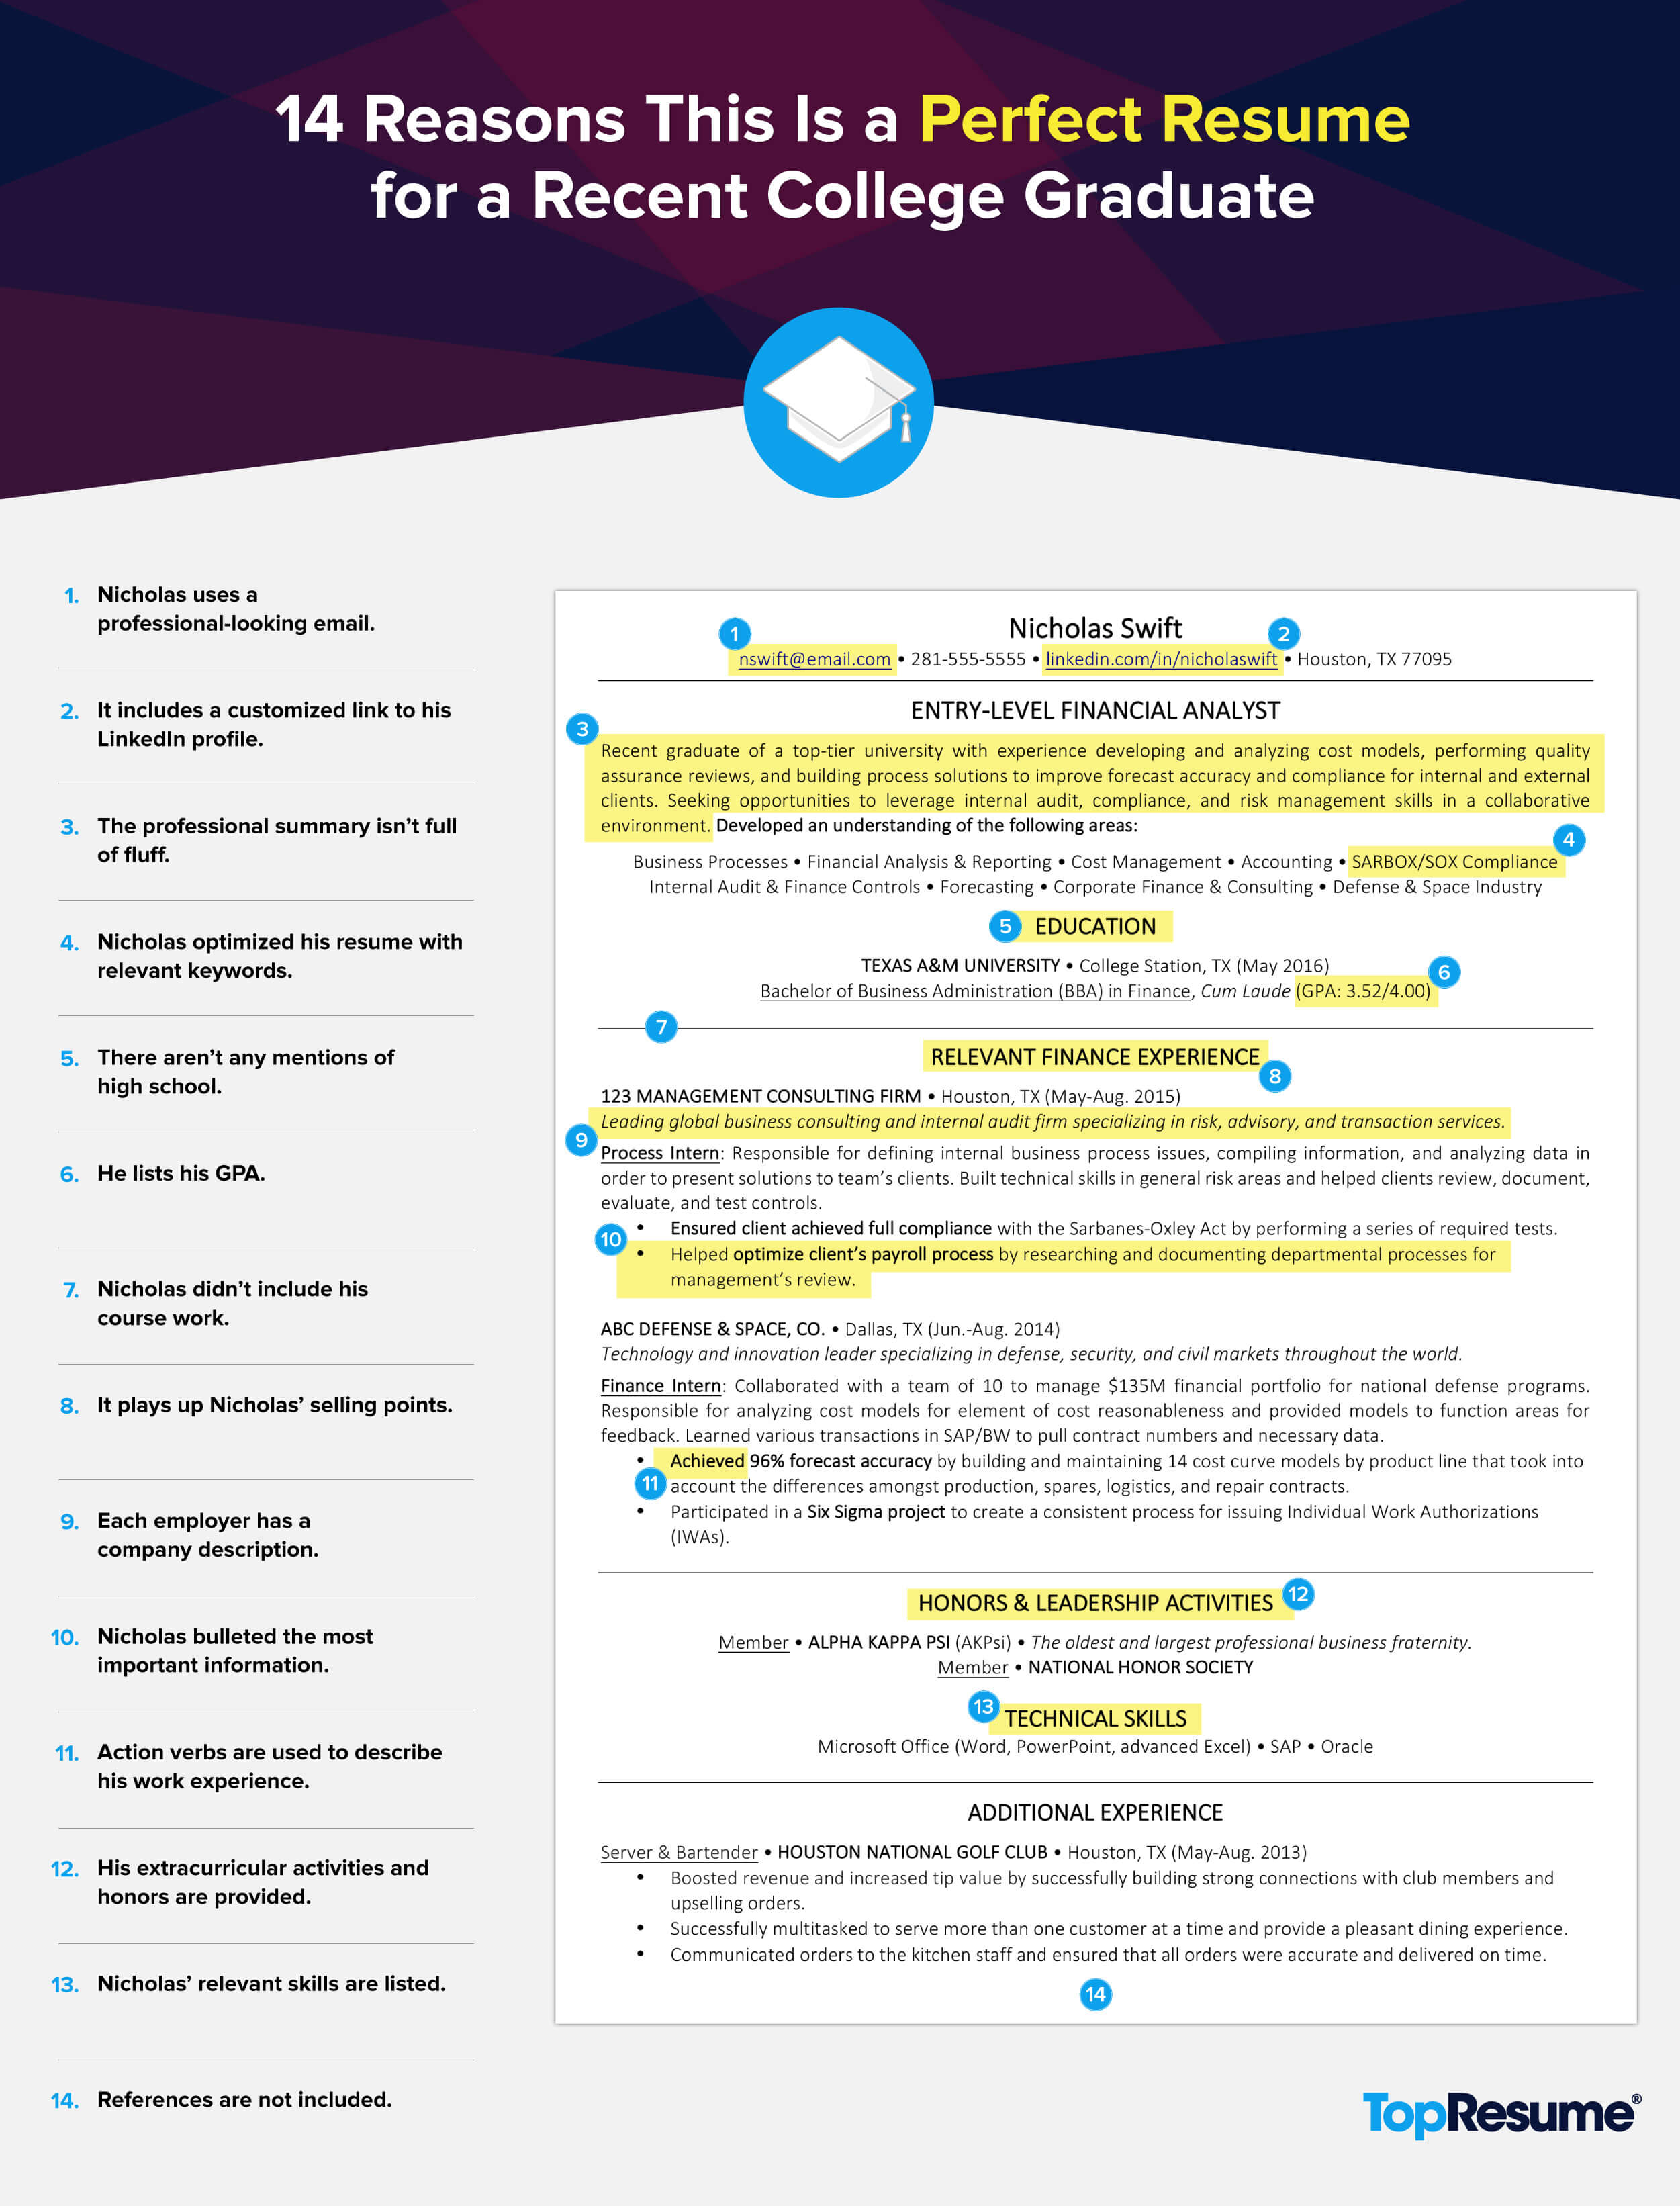 14 reasons this is a perfect recent college grad resume perfect college graduate resume